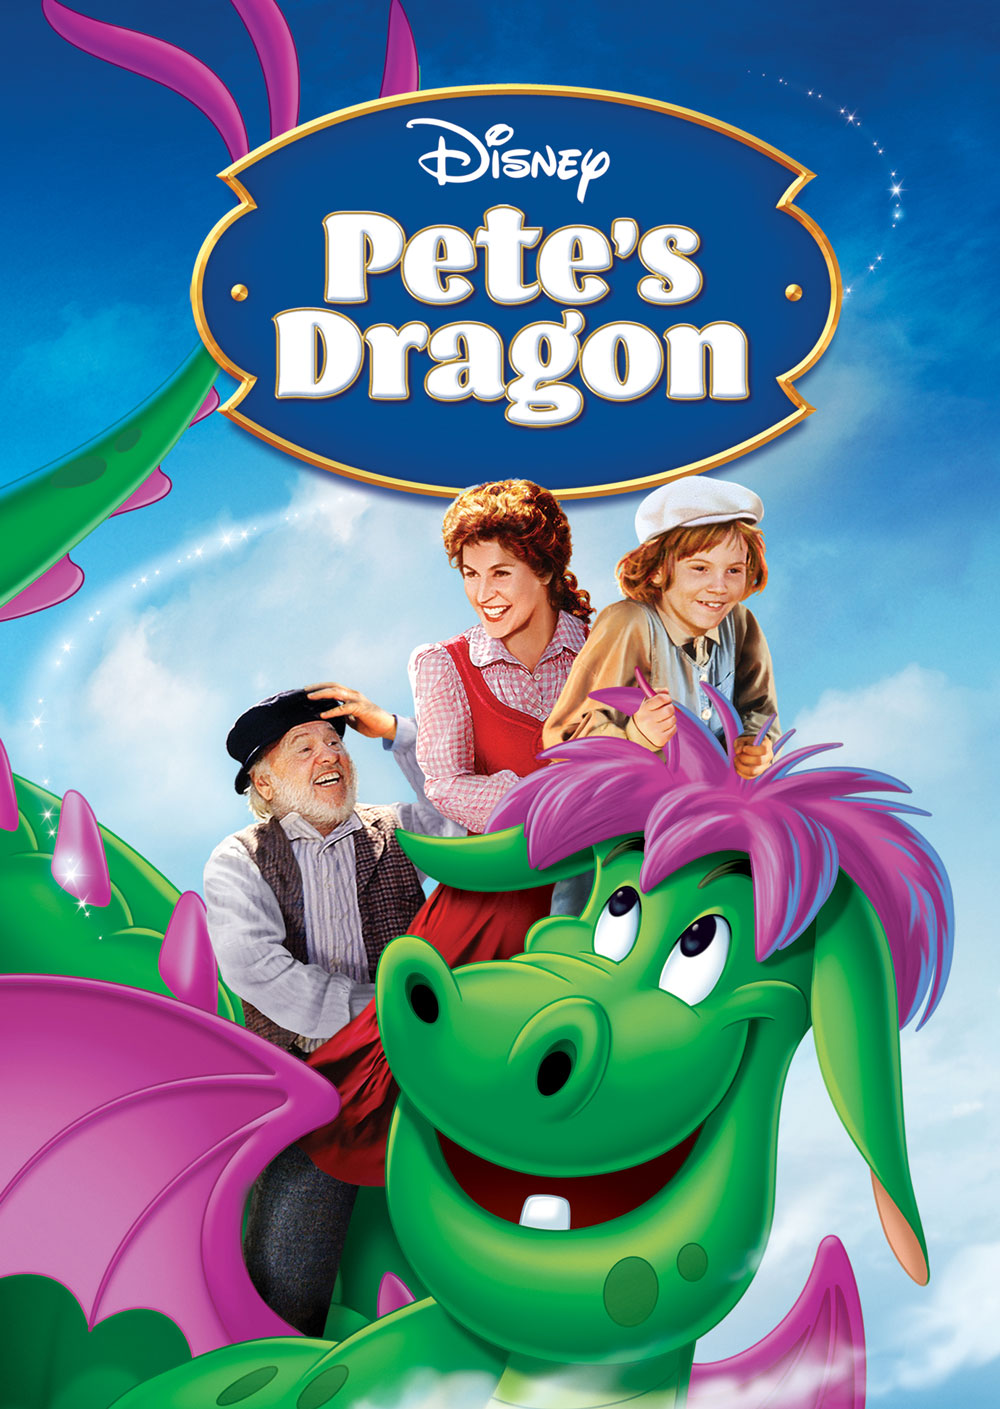 Disney S Pete S Dragon Begins Filming With Bryce Dallas